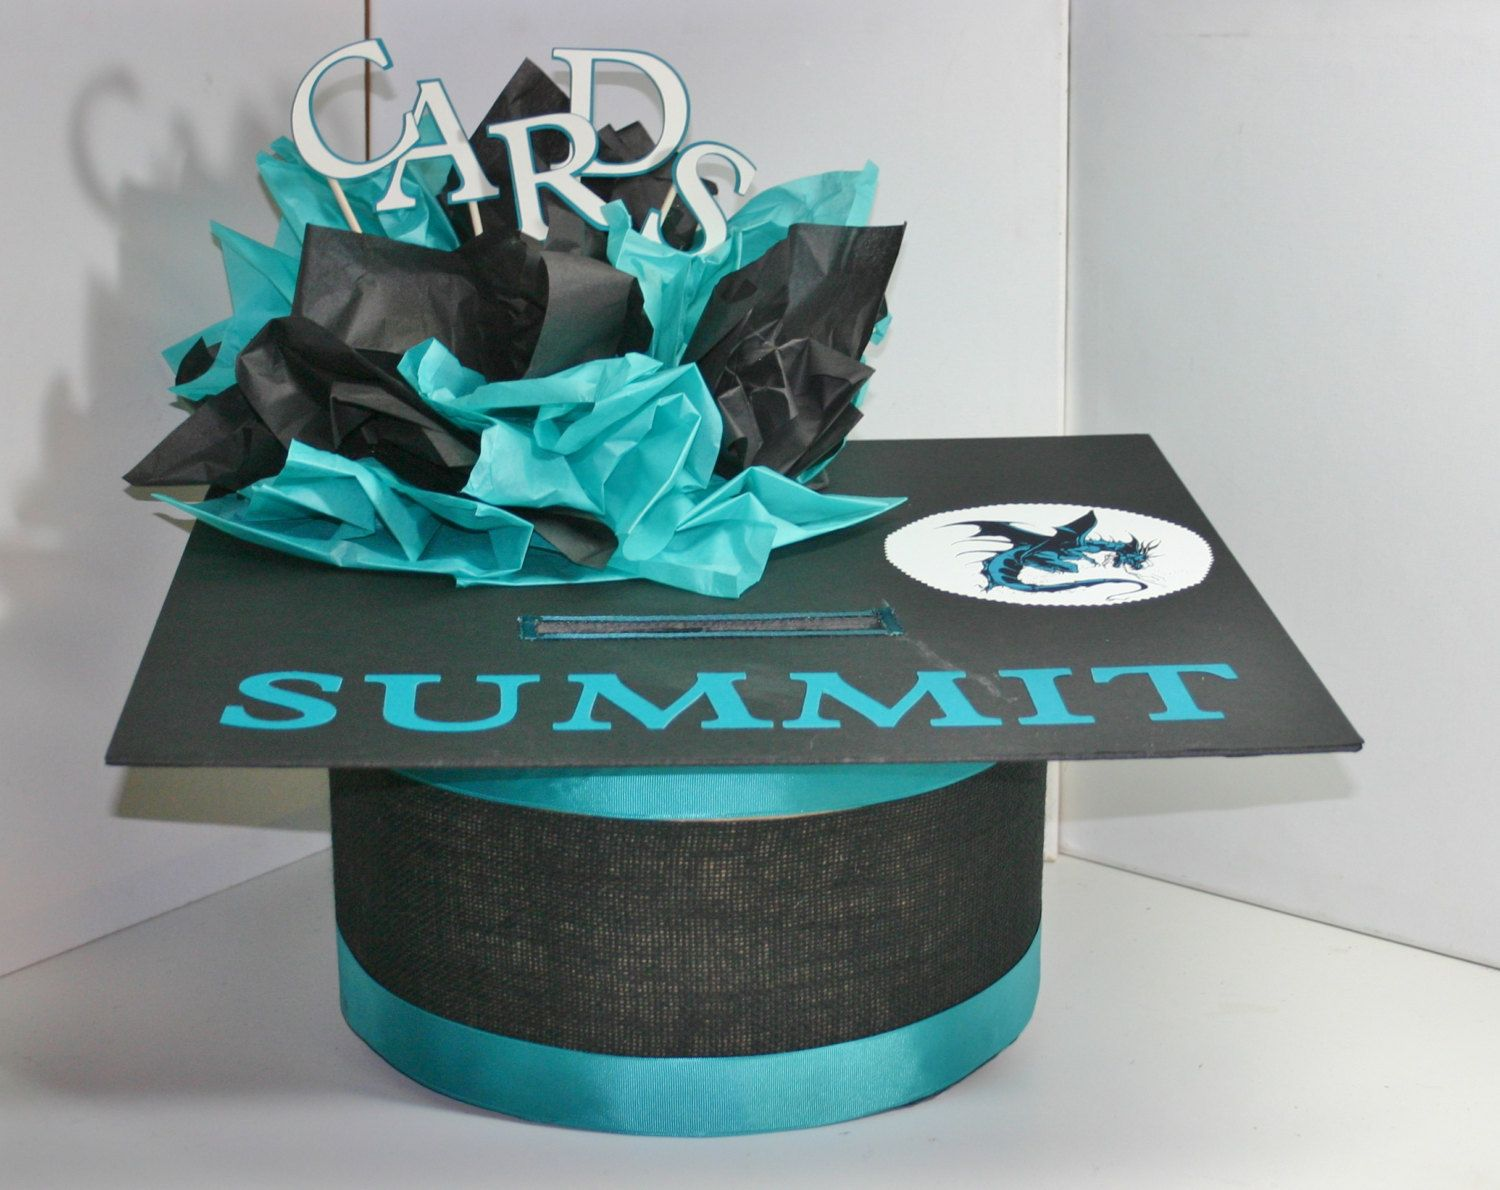 2014 graduation decorations - What A Great Way To Have Fun And Exciting Centerpiece Decorations For Your Seniors Graduation Day